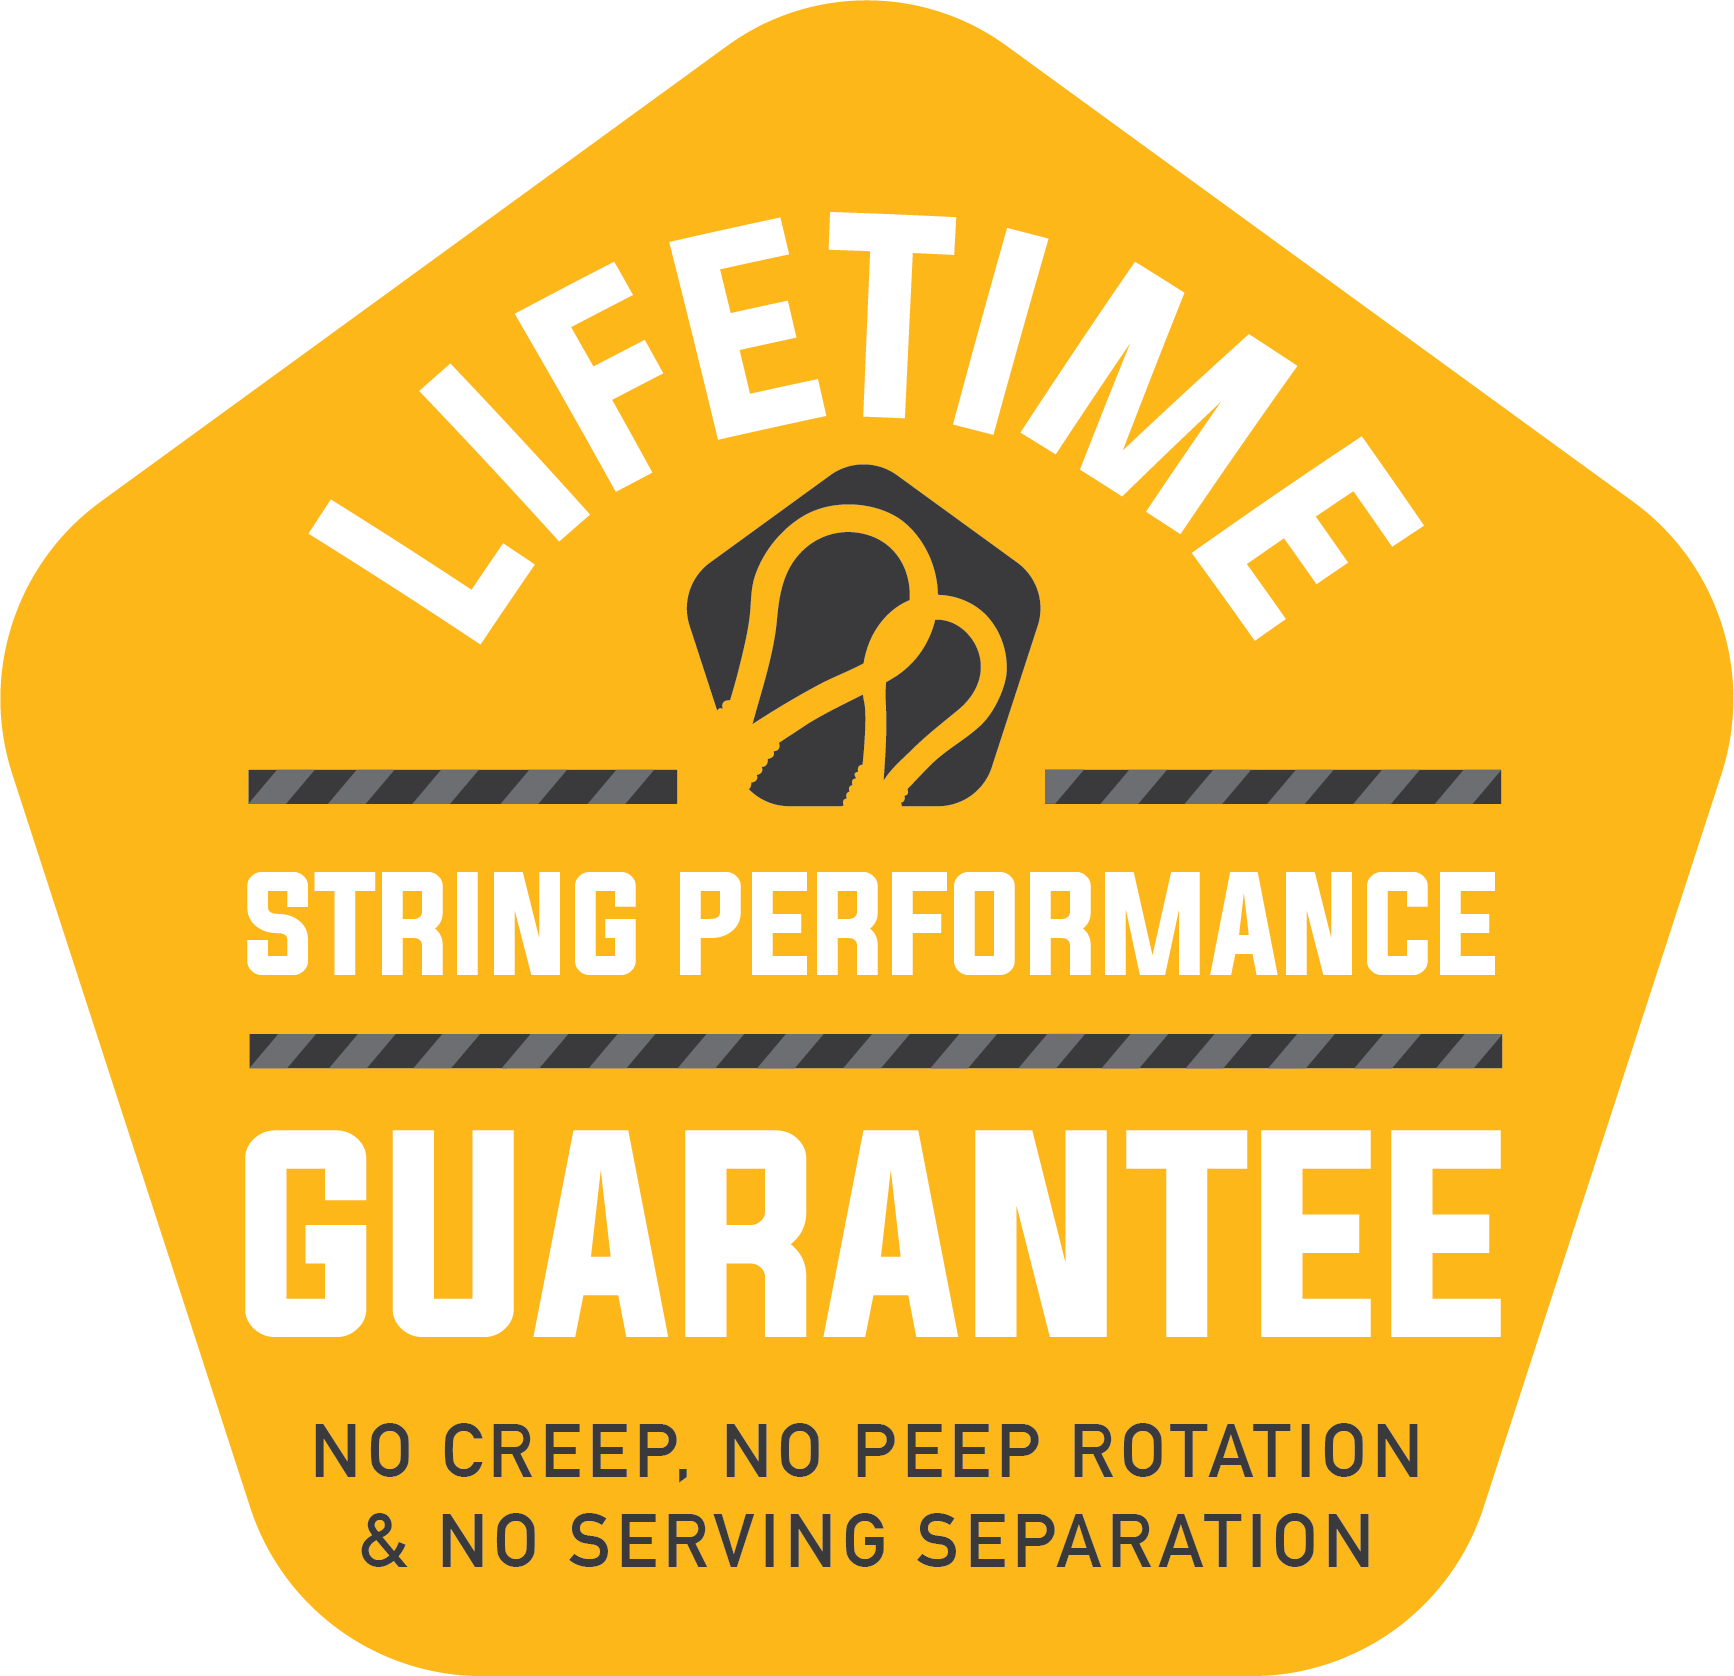 Winners Choice Lifetime String Performance Guarantee: no creep, no peep rotation, and no serving separation